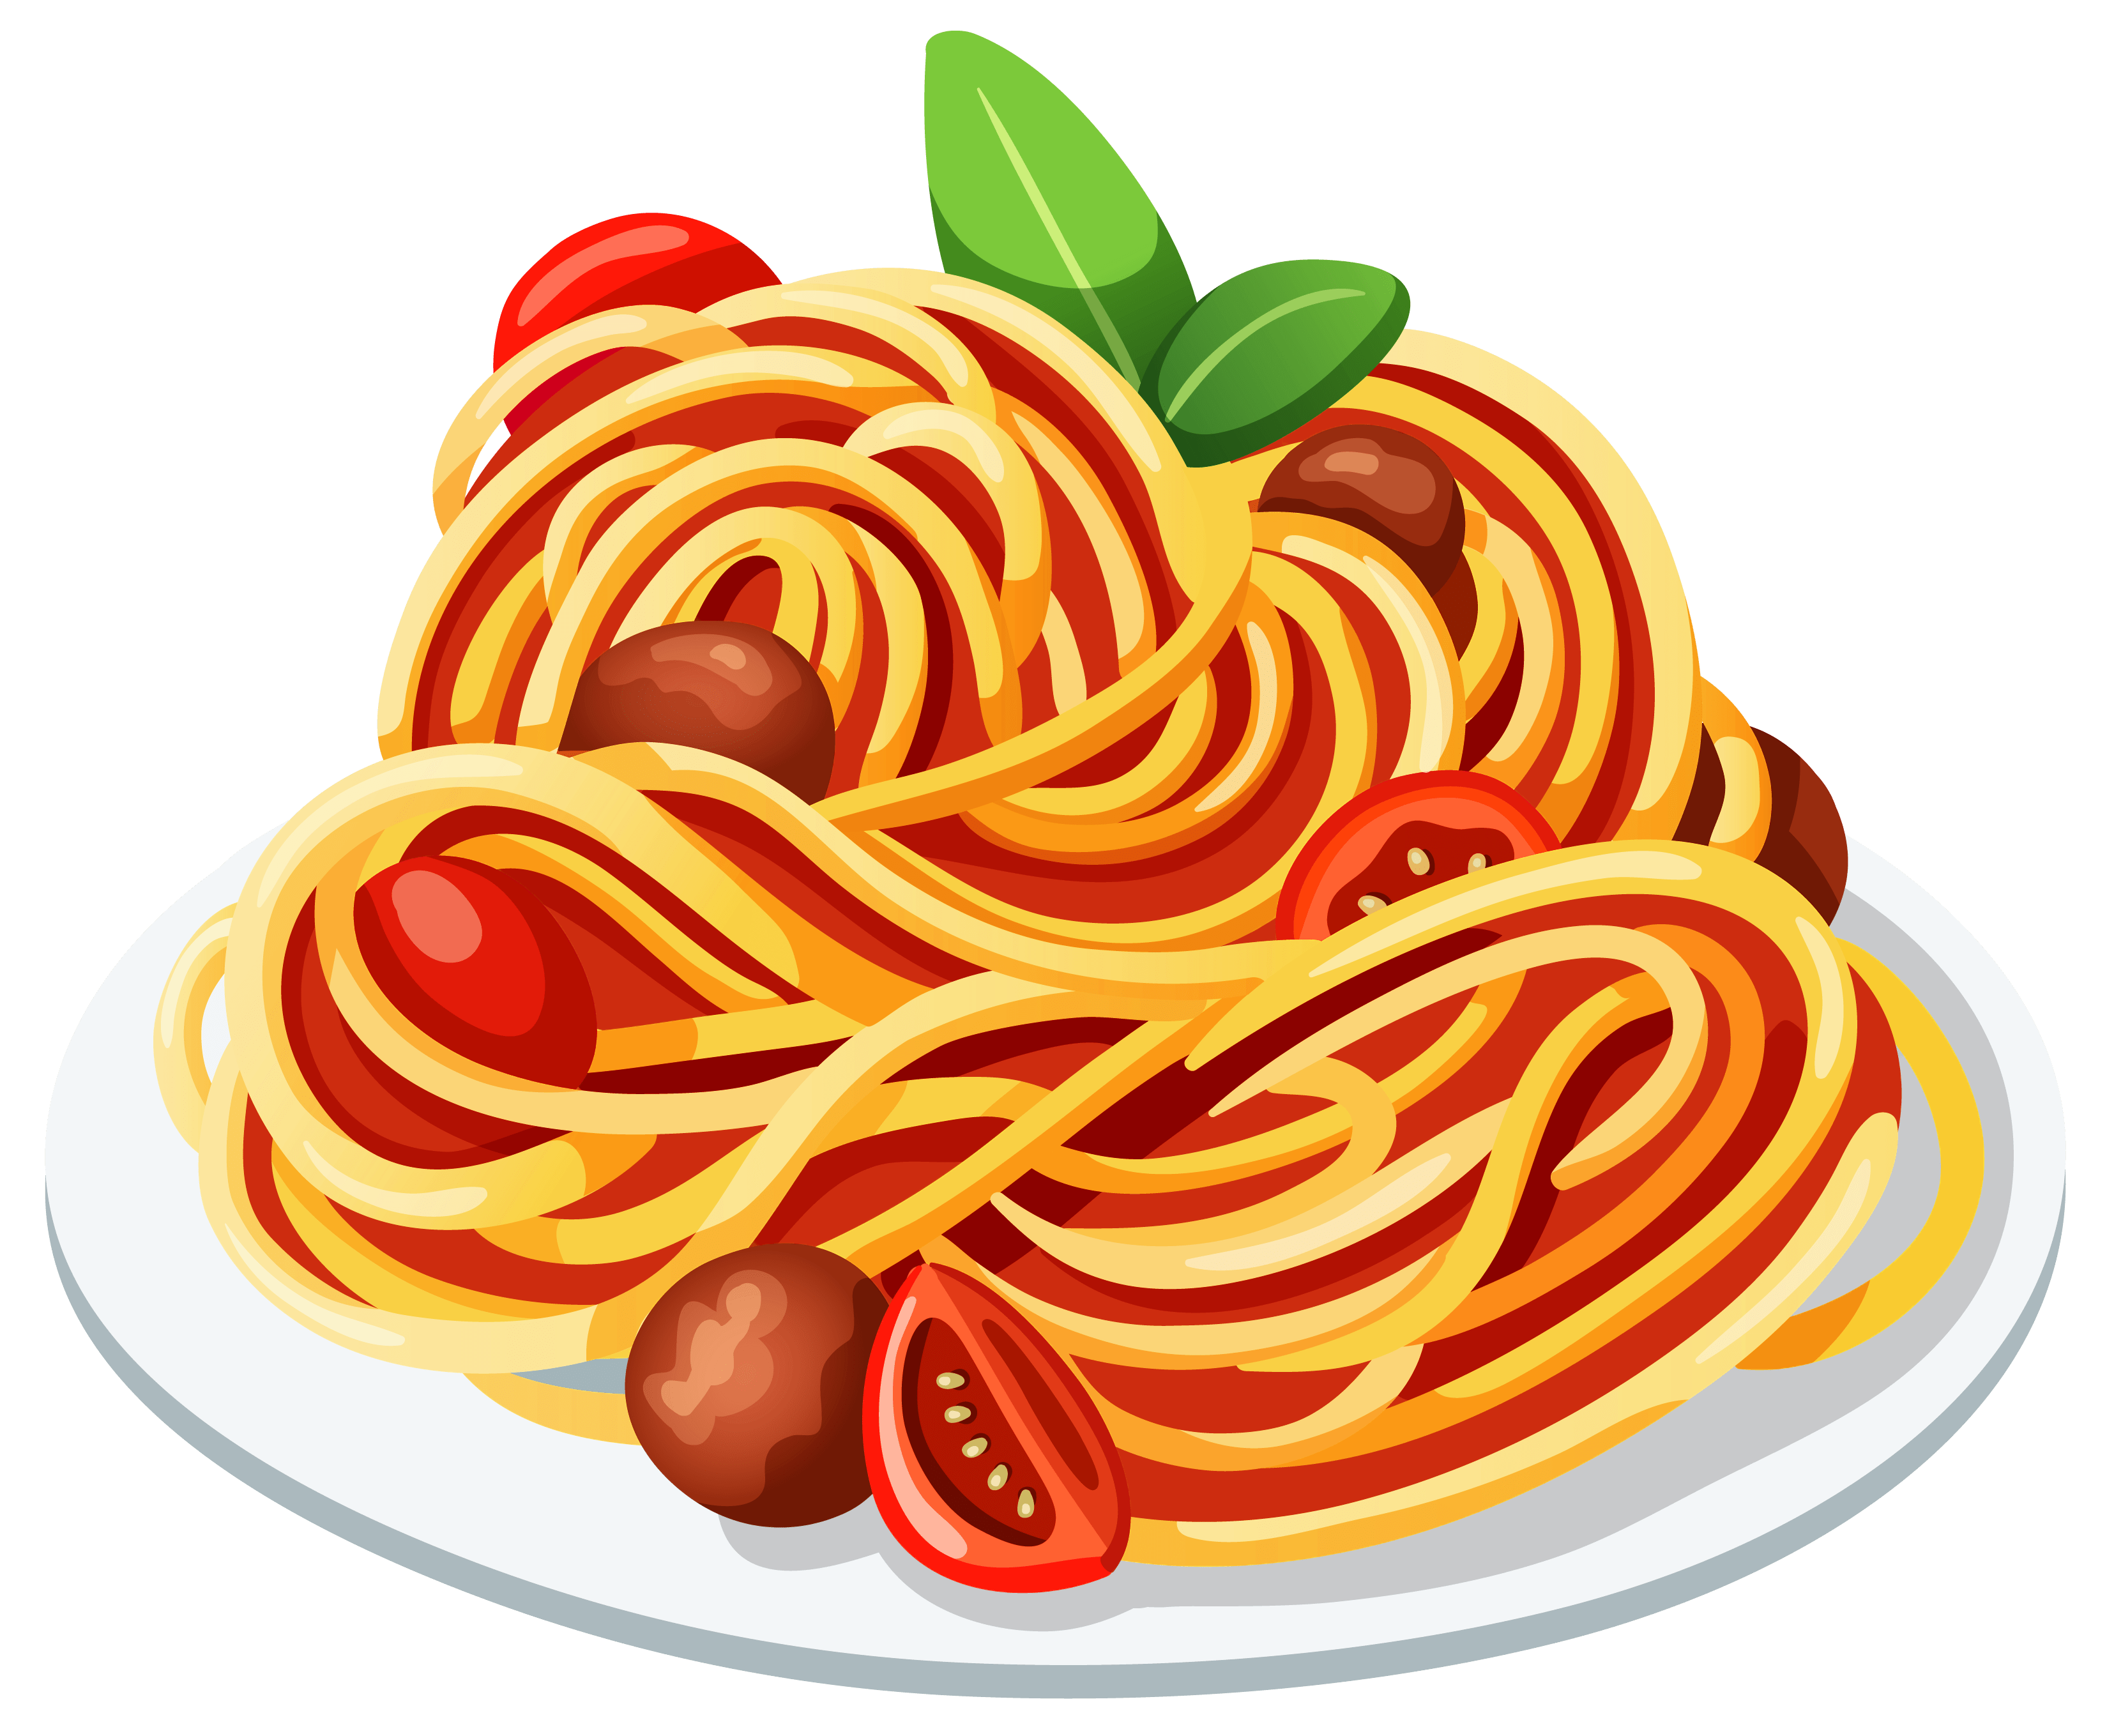 Free clipart of spaghetti and meatballs 3 » Clipart Portal.